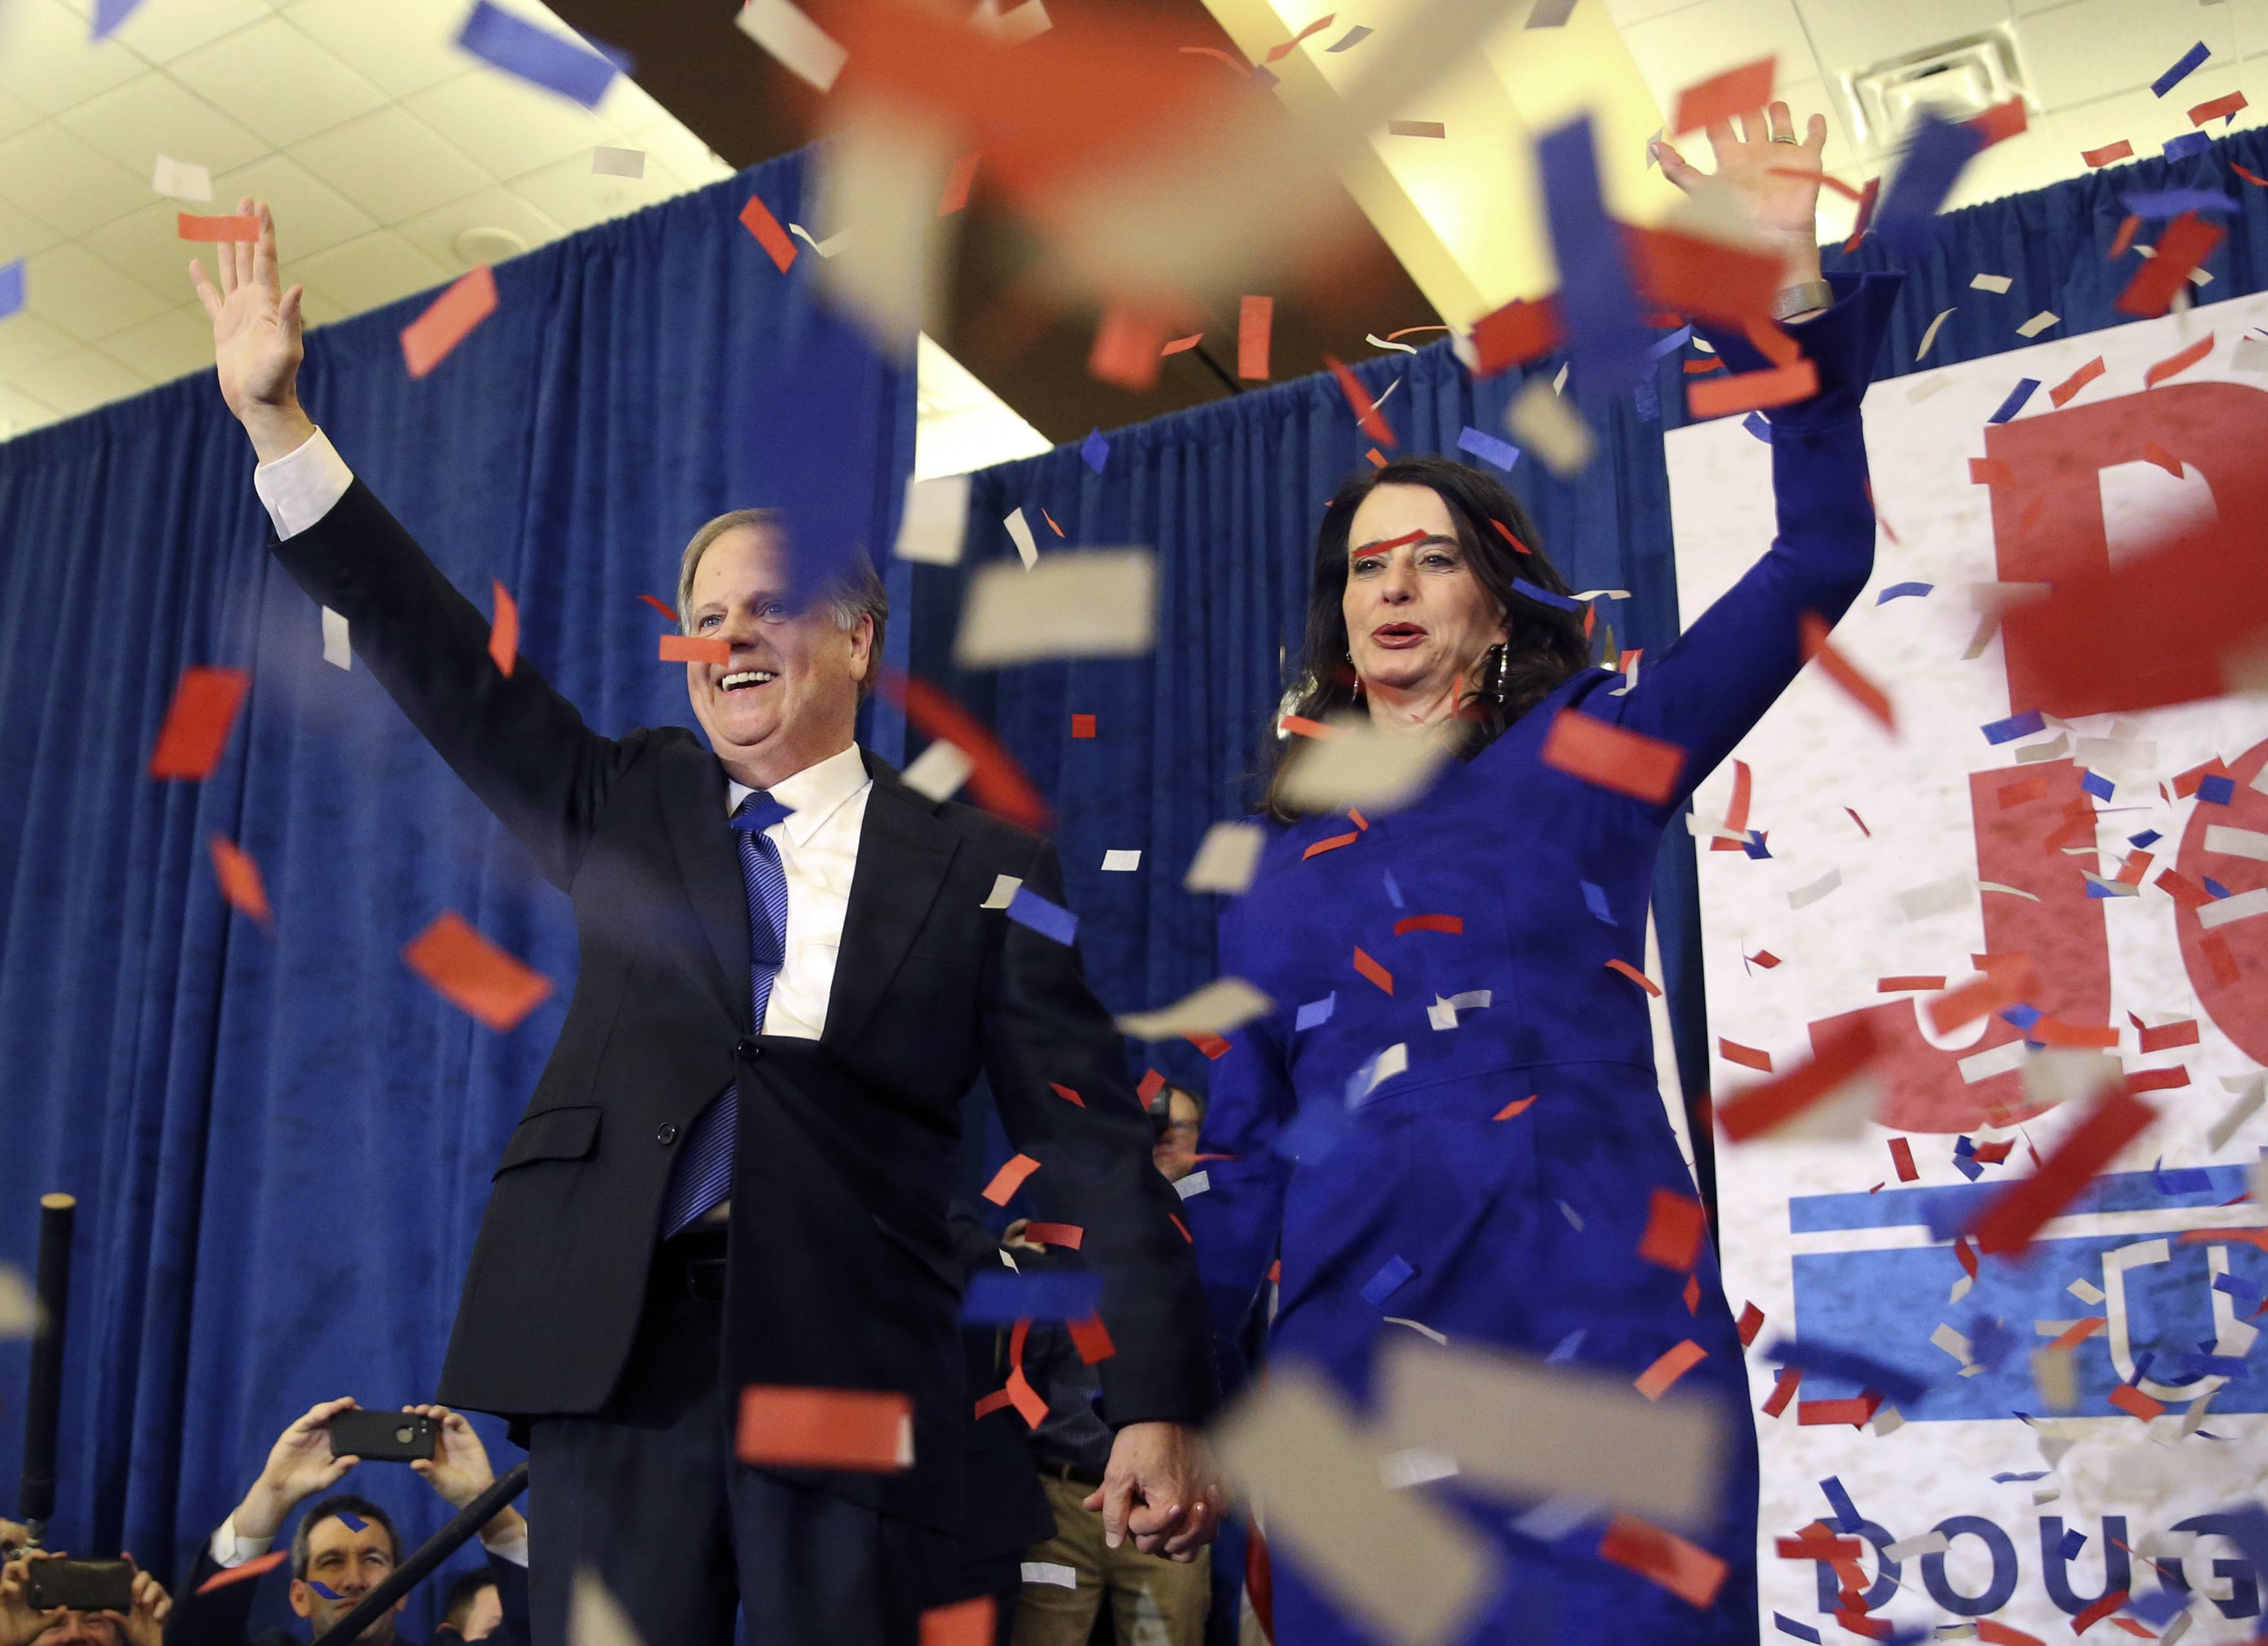 In a stunning victory aided by scandal, Democrat Doug Jones won Alabama's special Senate election on Tuesday, beating back history, an embattled Republican opponent and President Donald Trump, who urgently endorsed GOP rebel Roy Moore despite a litany of sexual misconduct allegations.